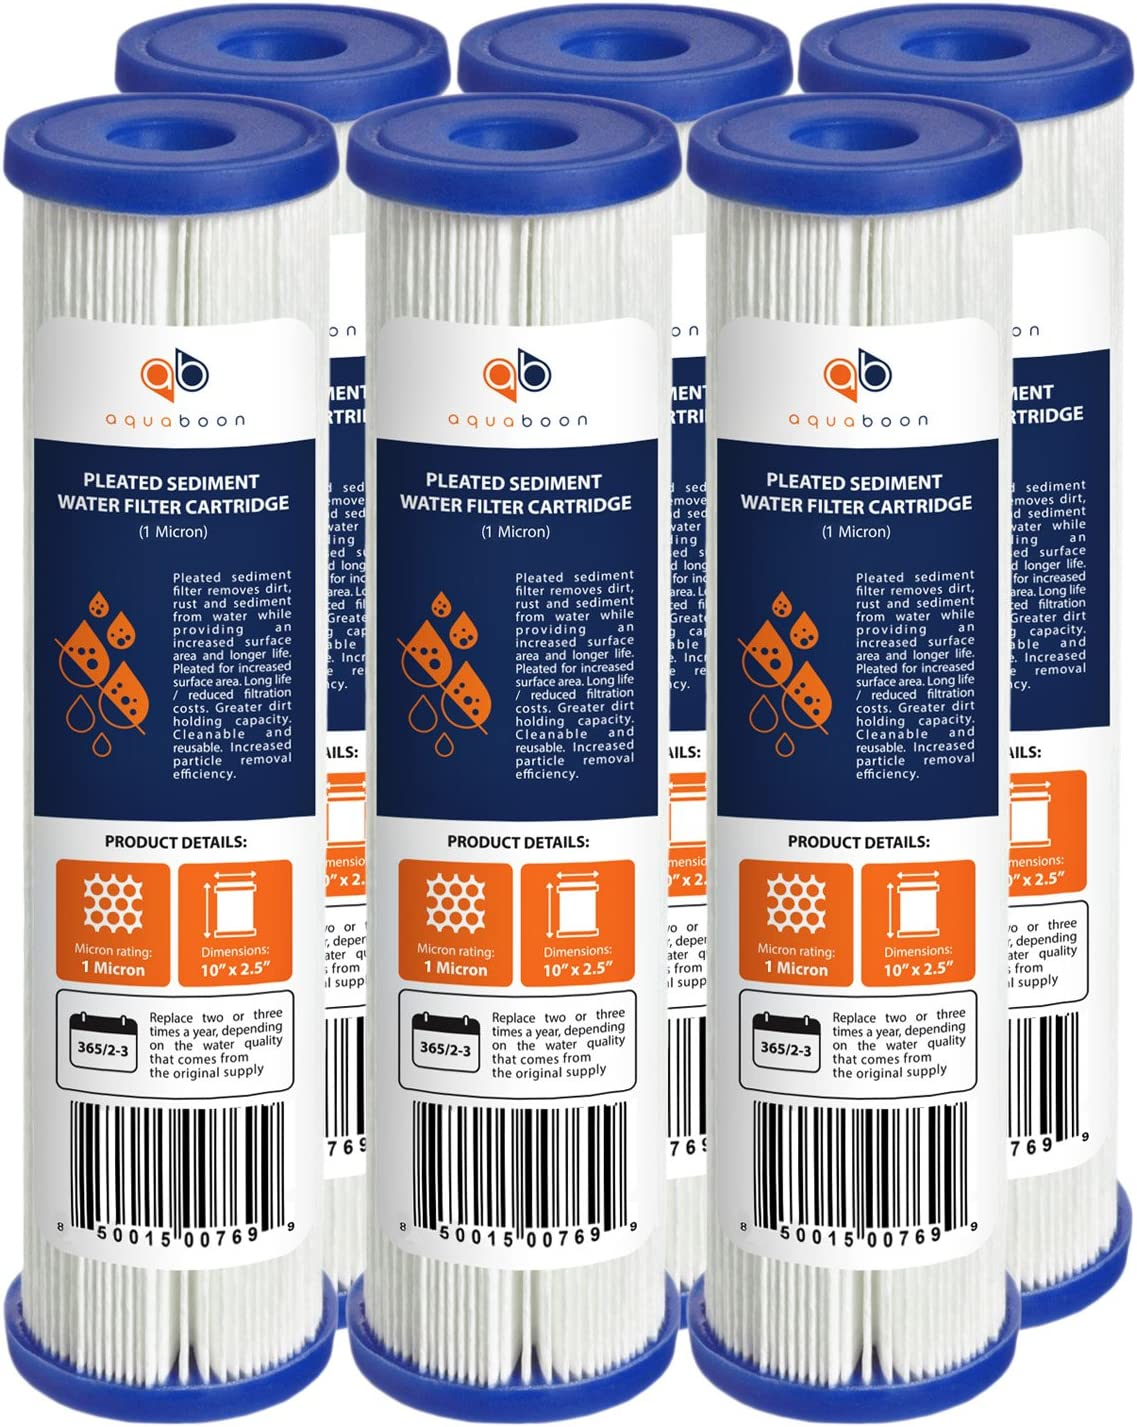 Aquaboon 1 Micron 6-Pack 10 x 2.5 Pleated Sediment Filter